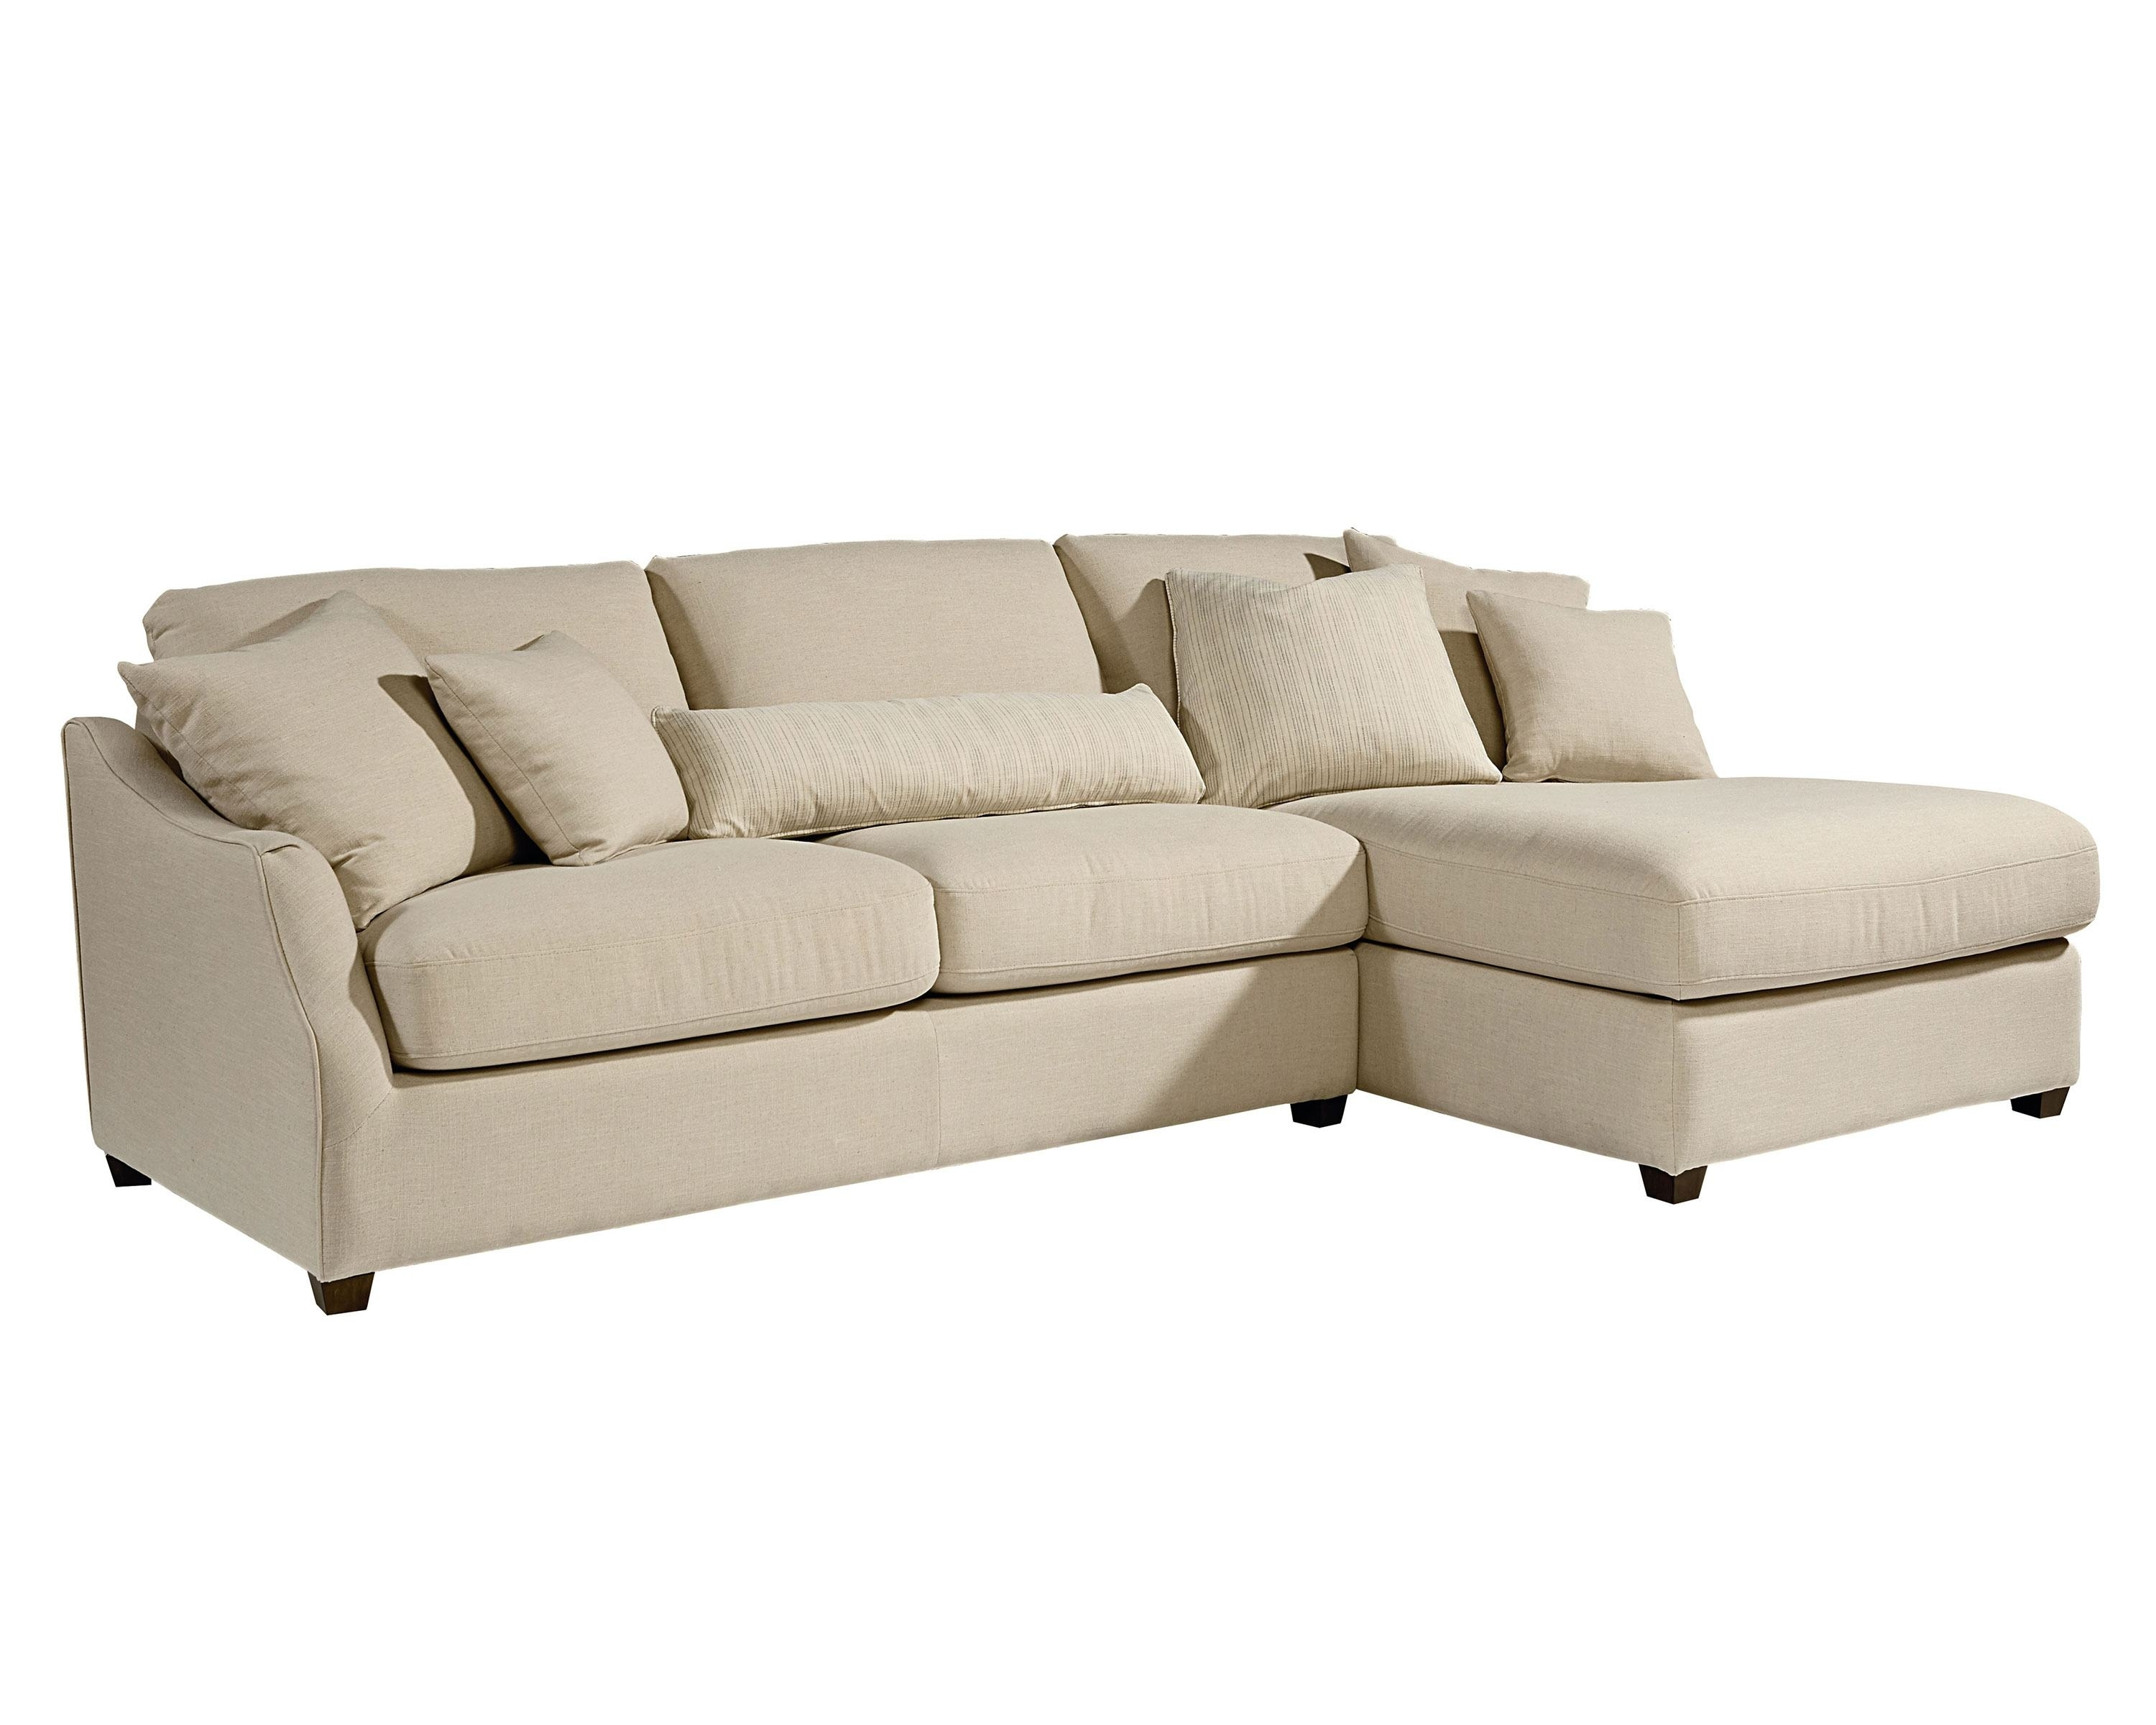 Homestead Chaise Sofa – Magnolia Home Within Magnolia Home Homestead 4 Piece Sectionals By Joanna Gaines (View 3 of 25)